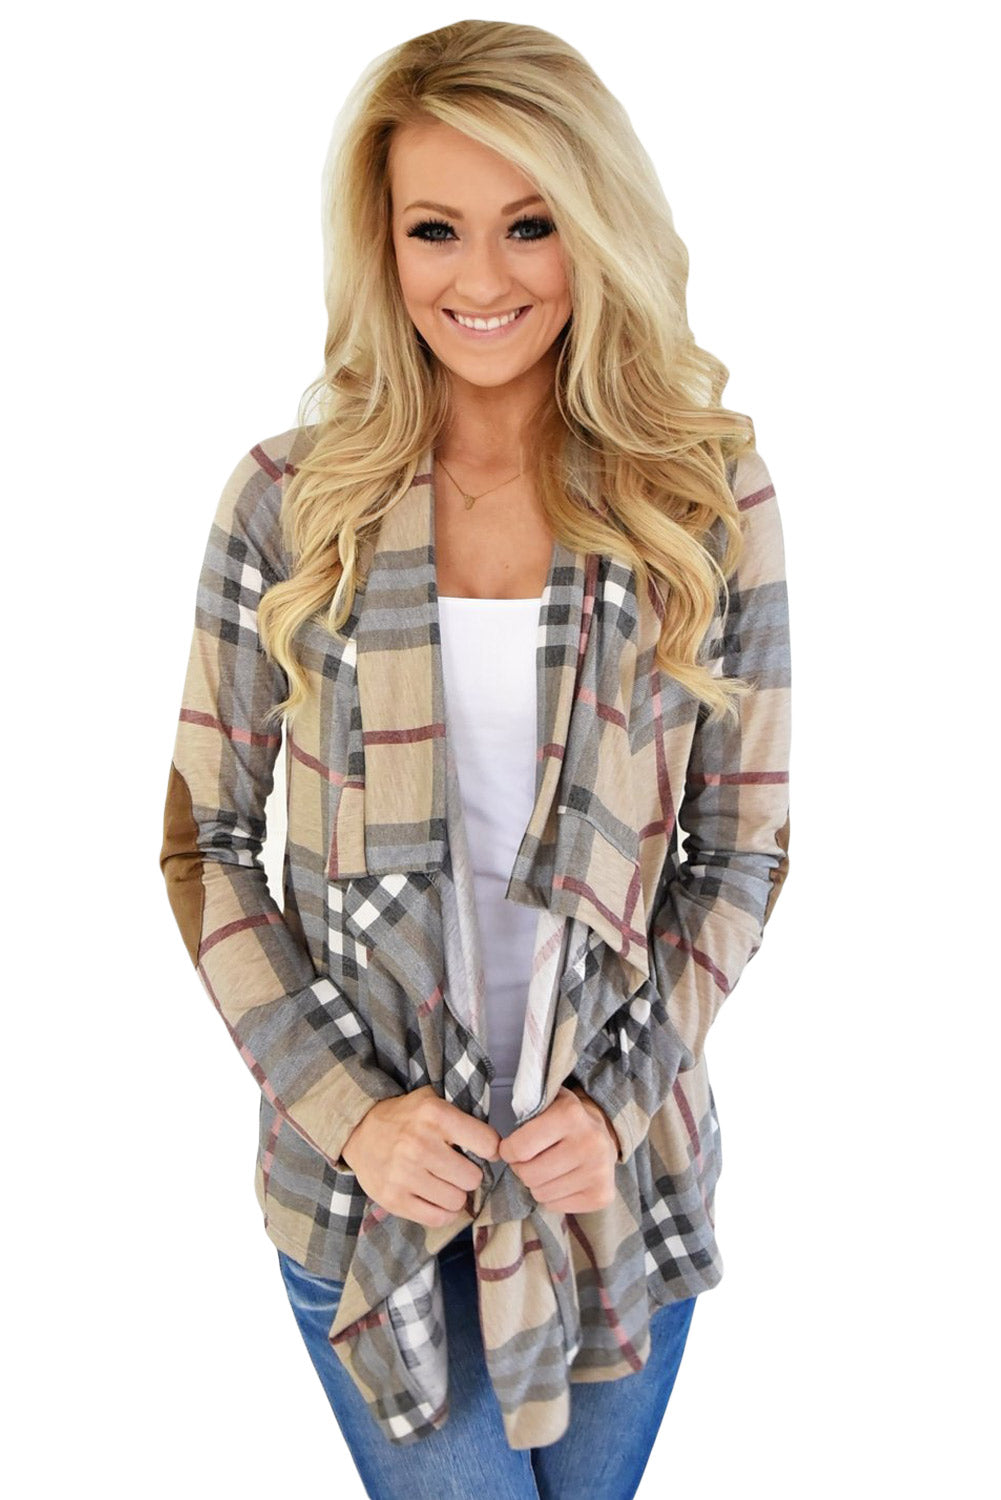 Super Cute Apricot Fall Party Plaid Long Sleeves Cardigan